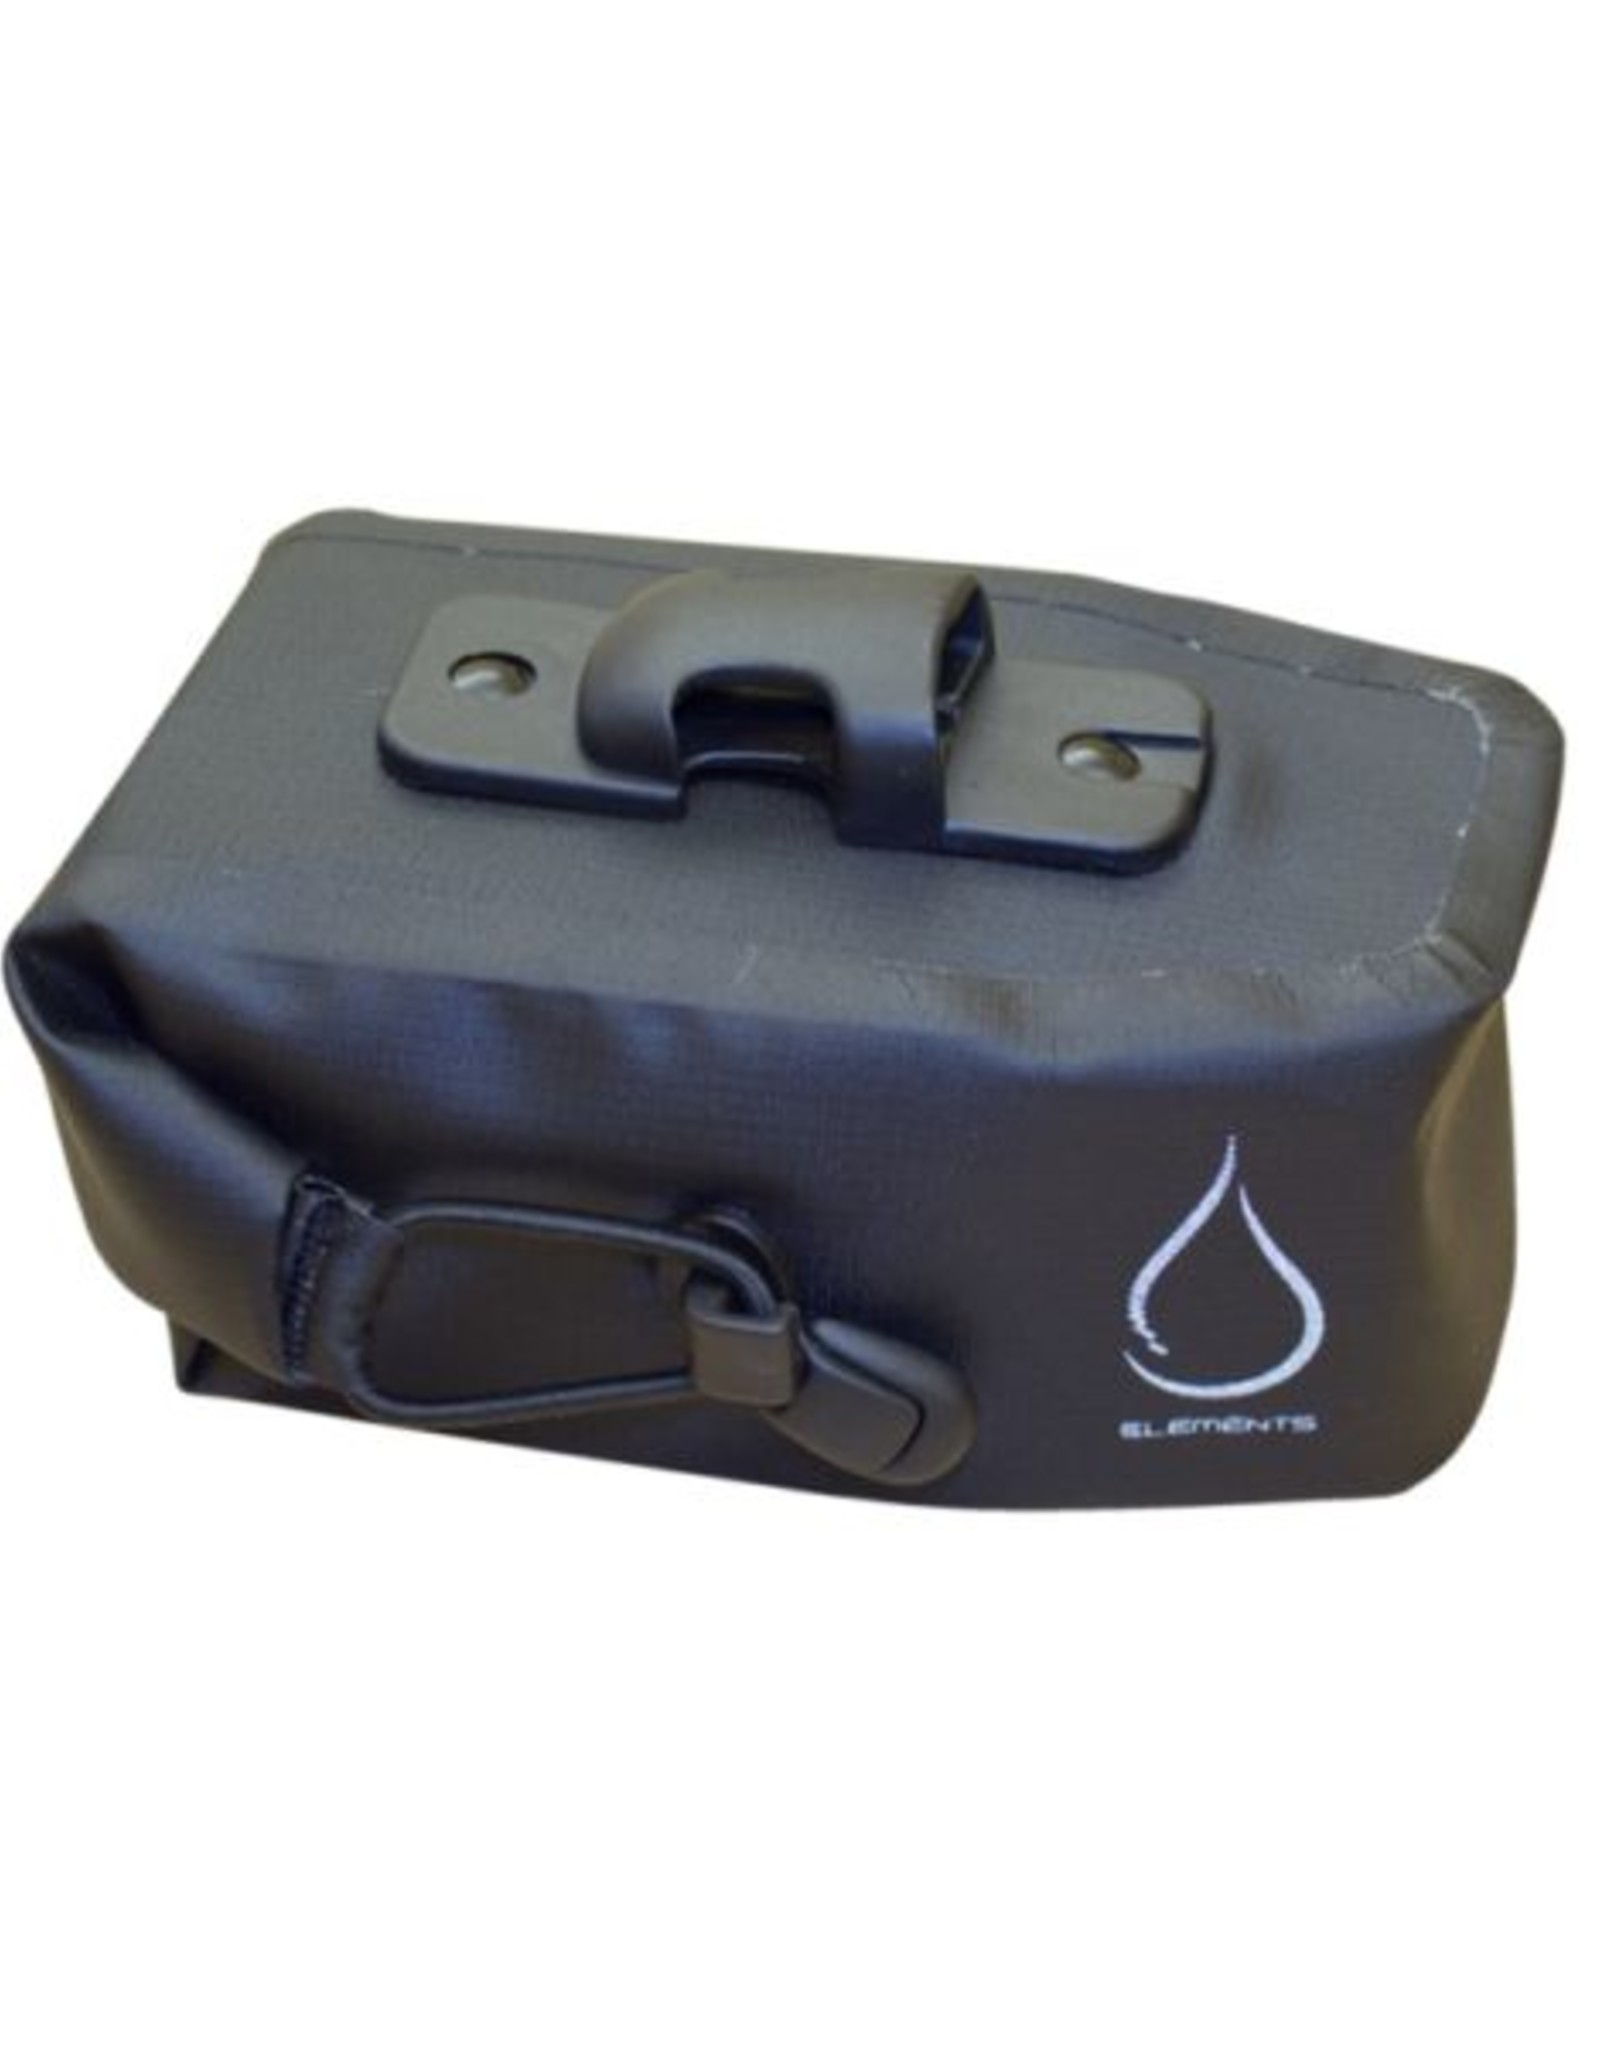 Serfas Serfas Monsoon Waterproof Bag LG Black